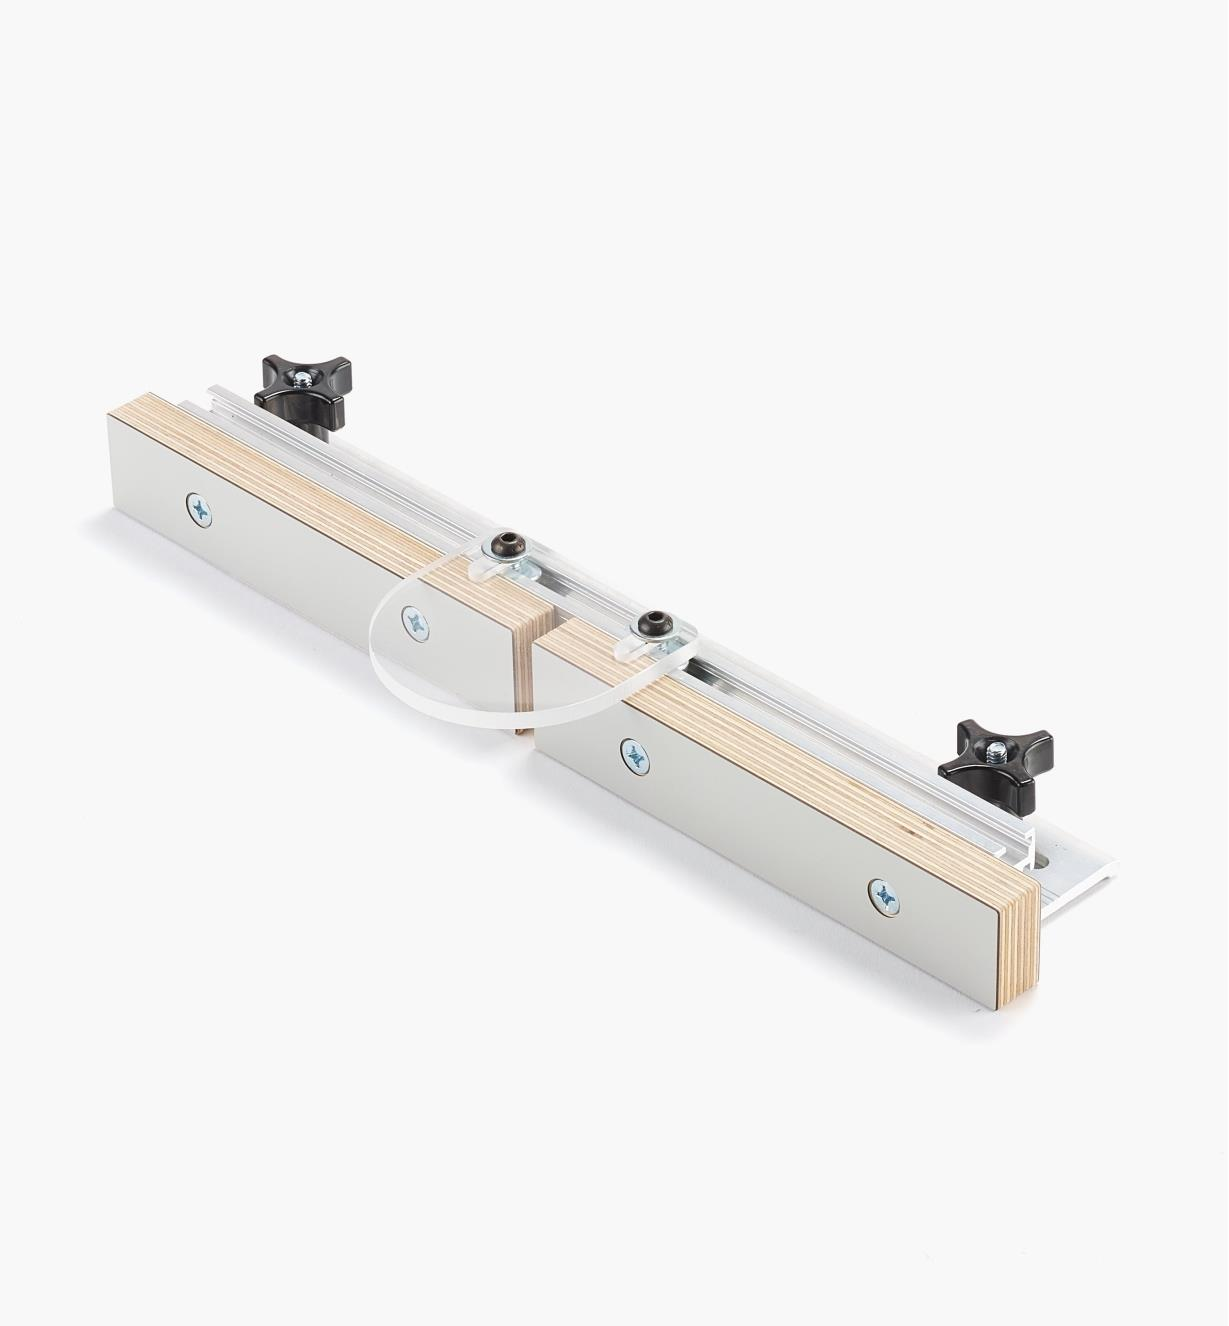 05J6705 - Veritas Table Fence for Compact Routers